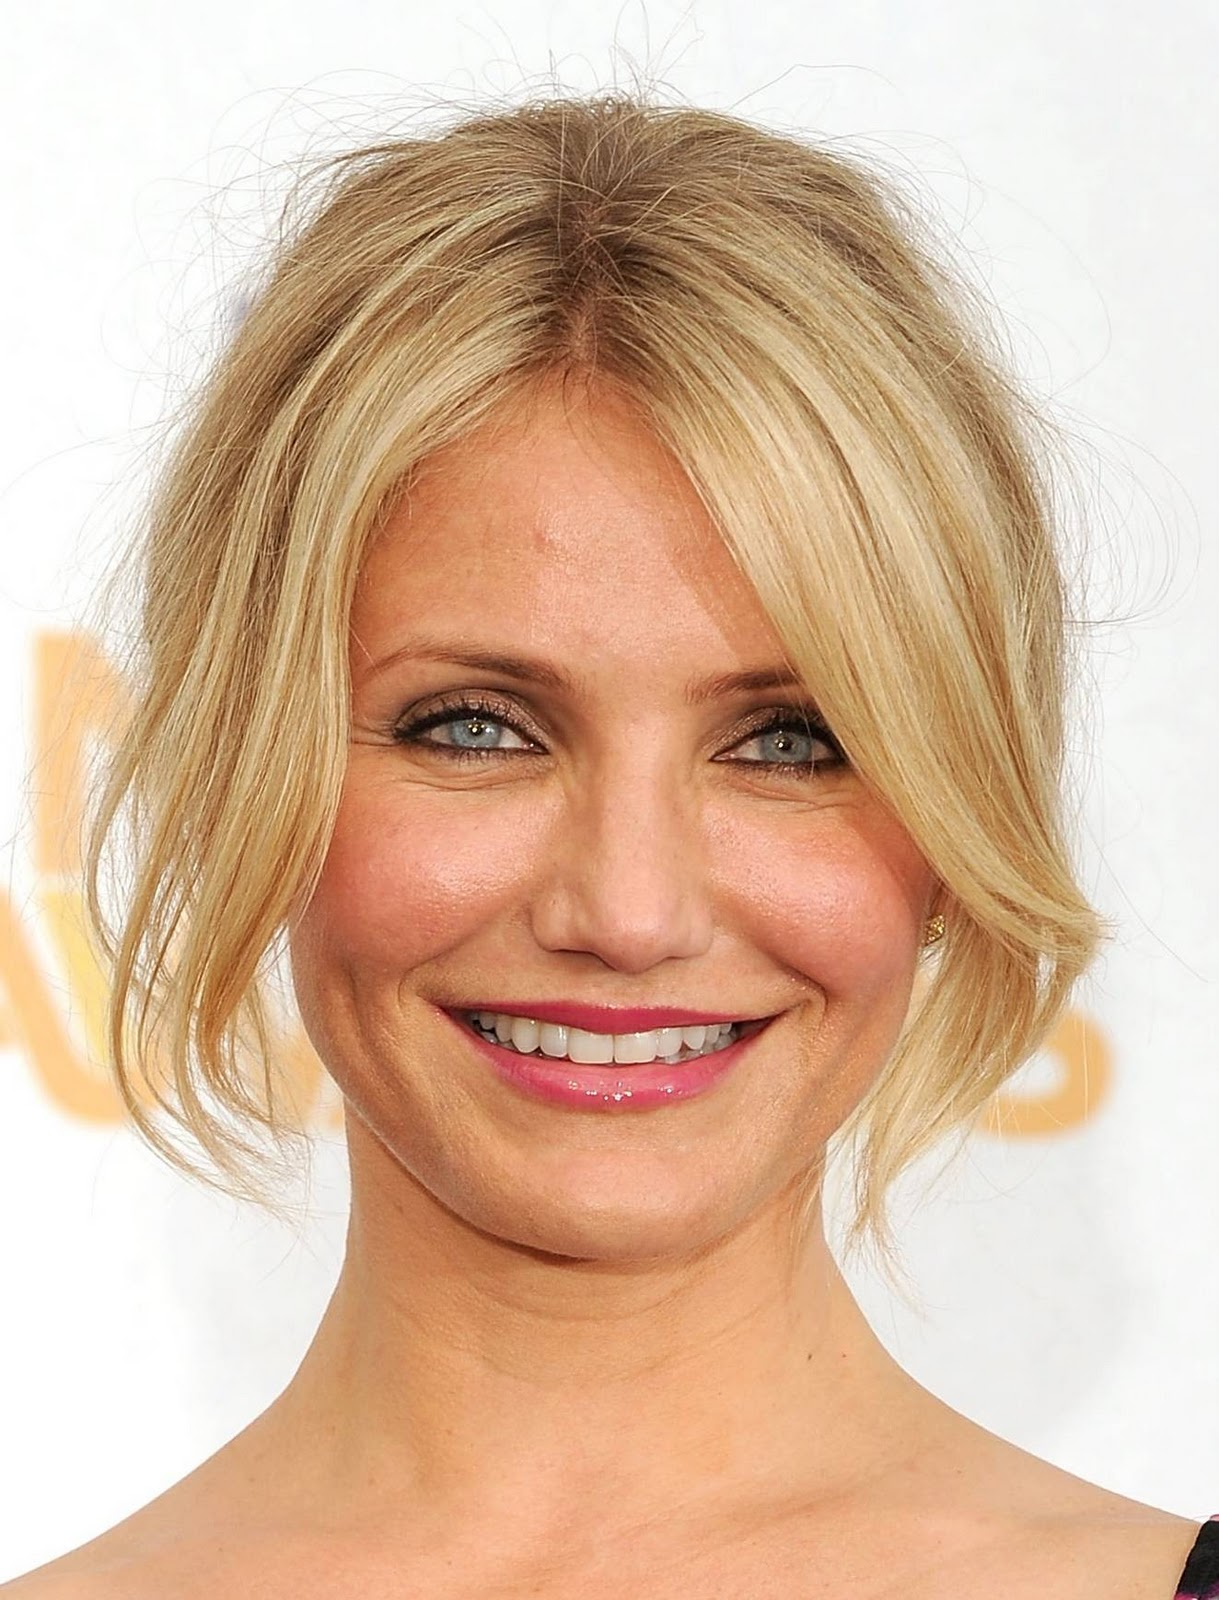 Hairstyles For Celebrity: Celebrity Hairstyles Cameron Diaz